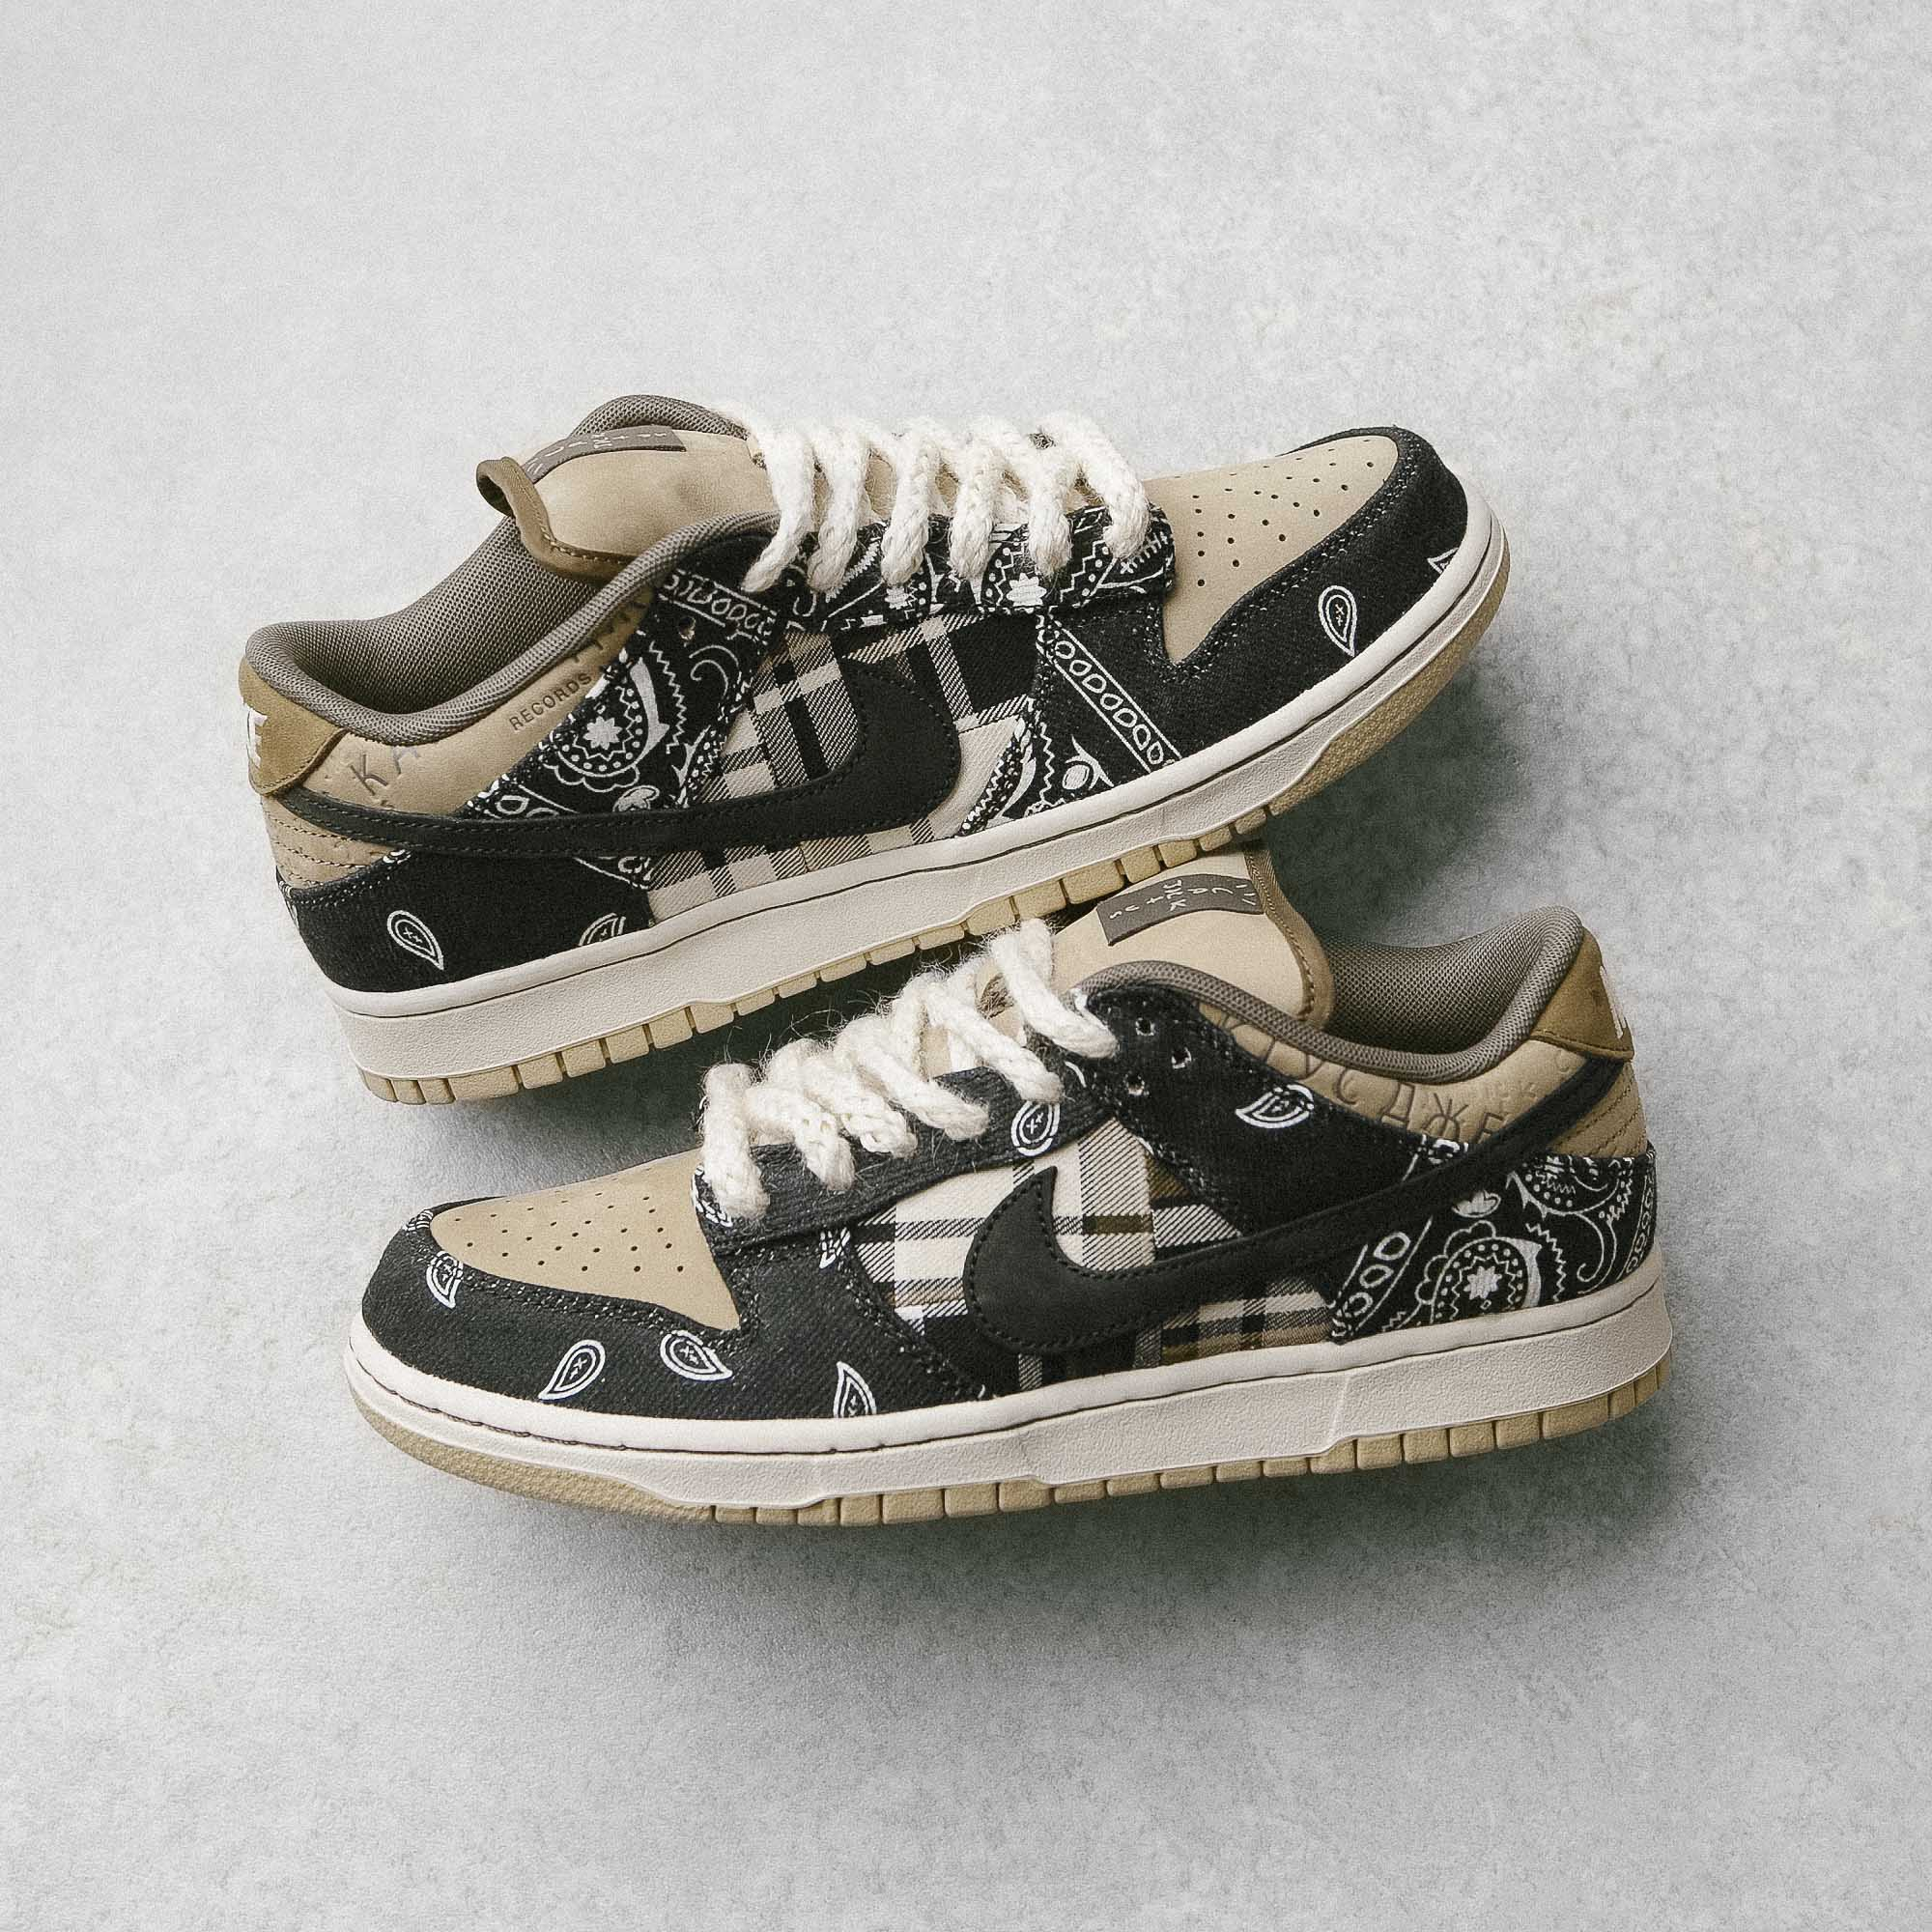 Nike SB x Travis Scott Dunk Low Premium